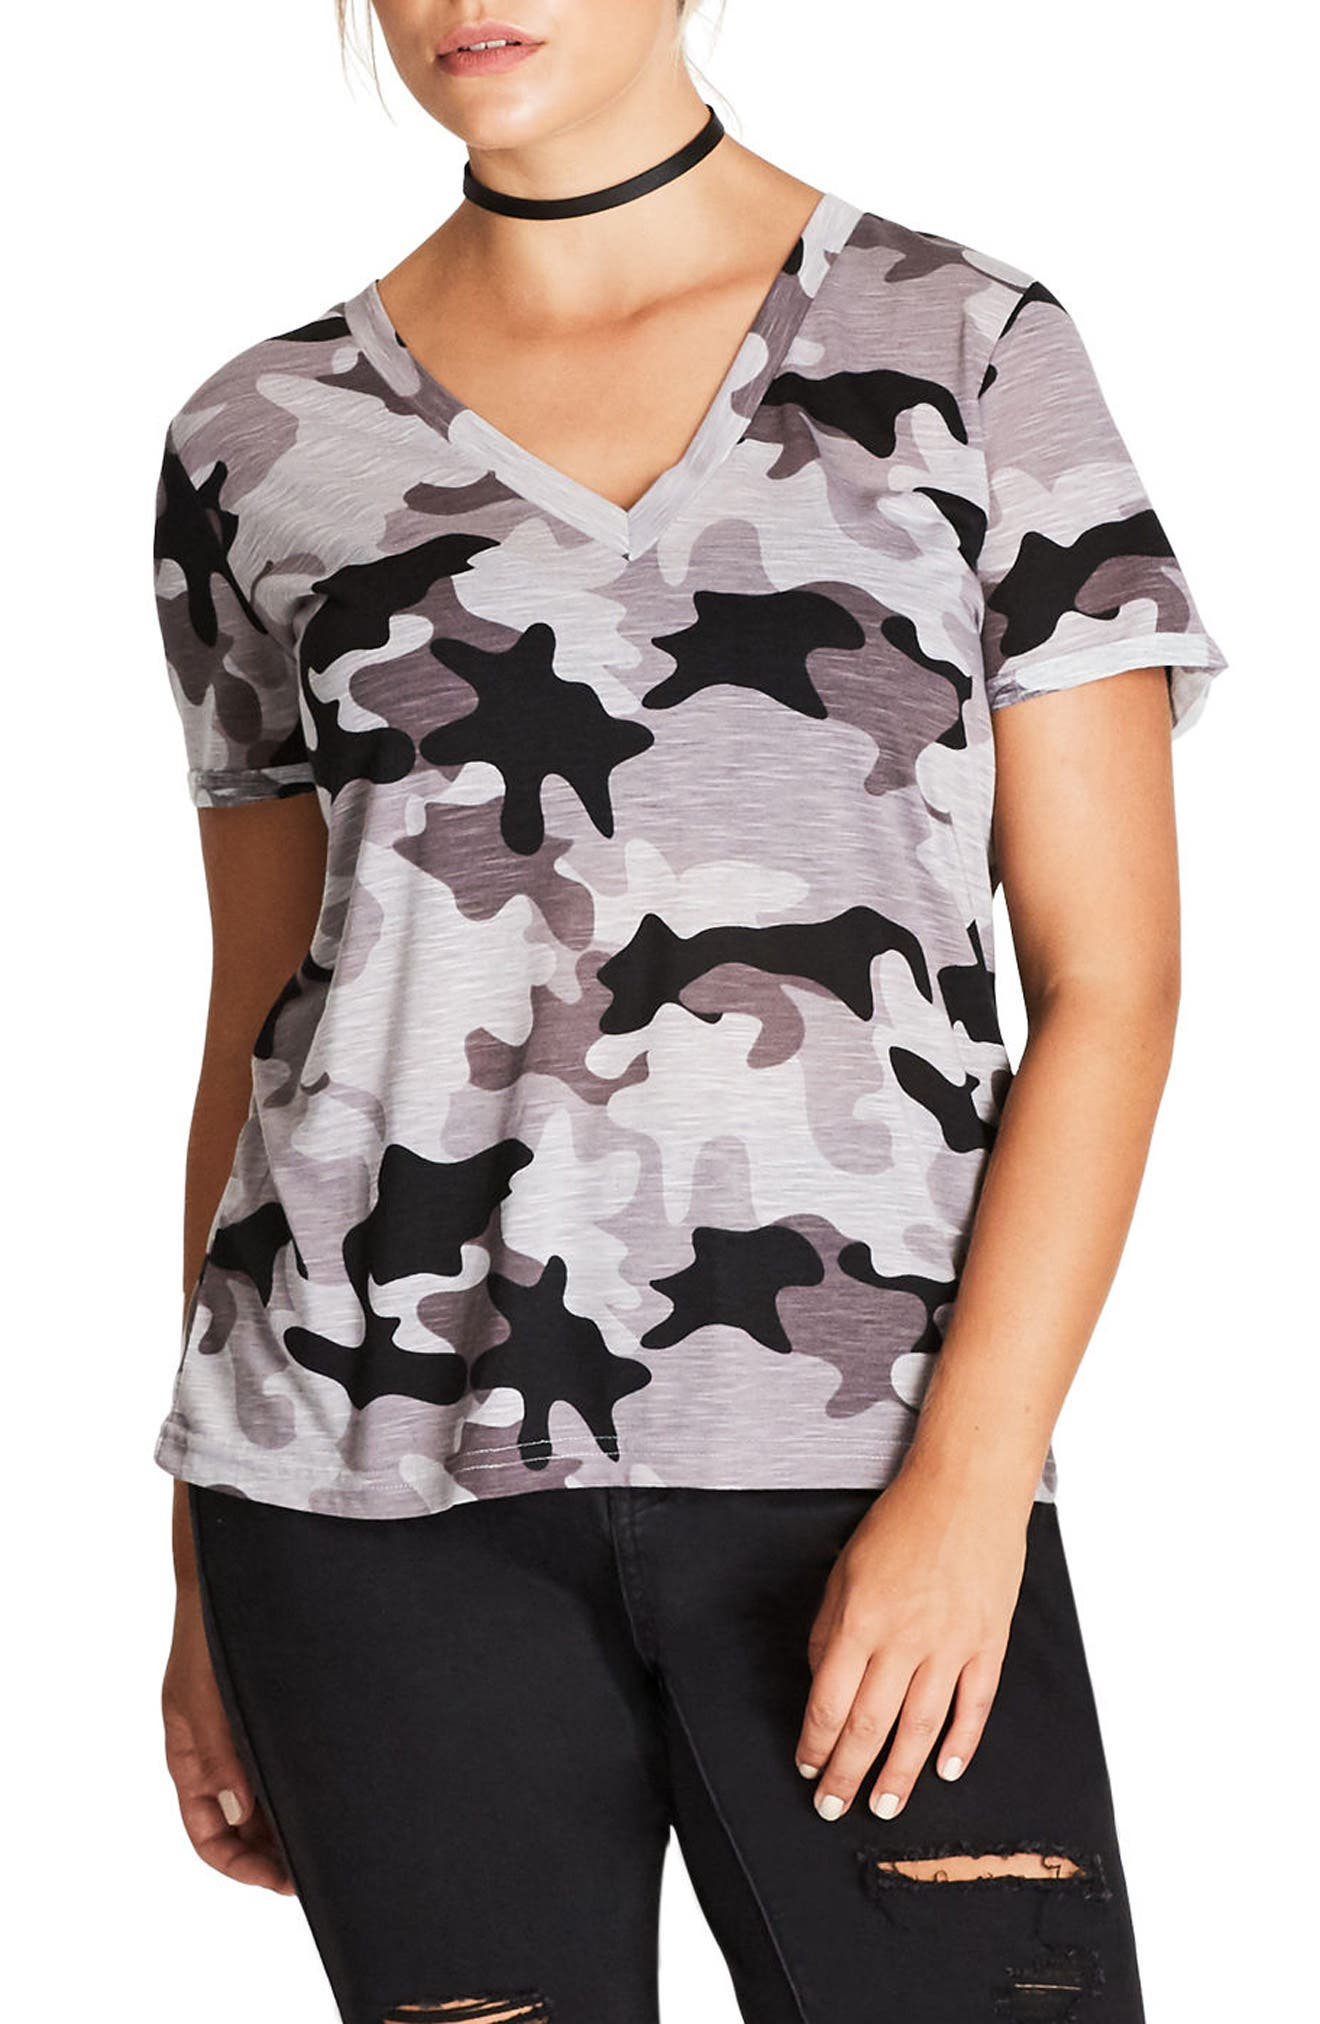 Main Image - City Chic Camouflage Print Top (Plus Size)